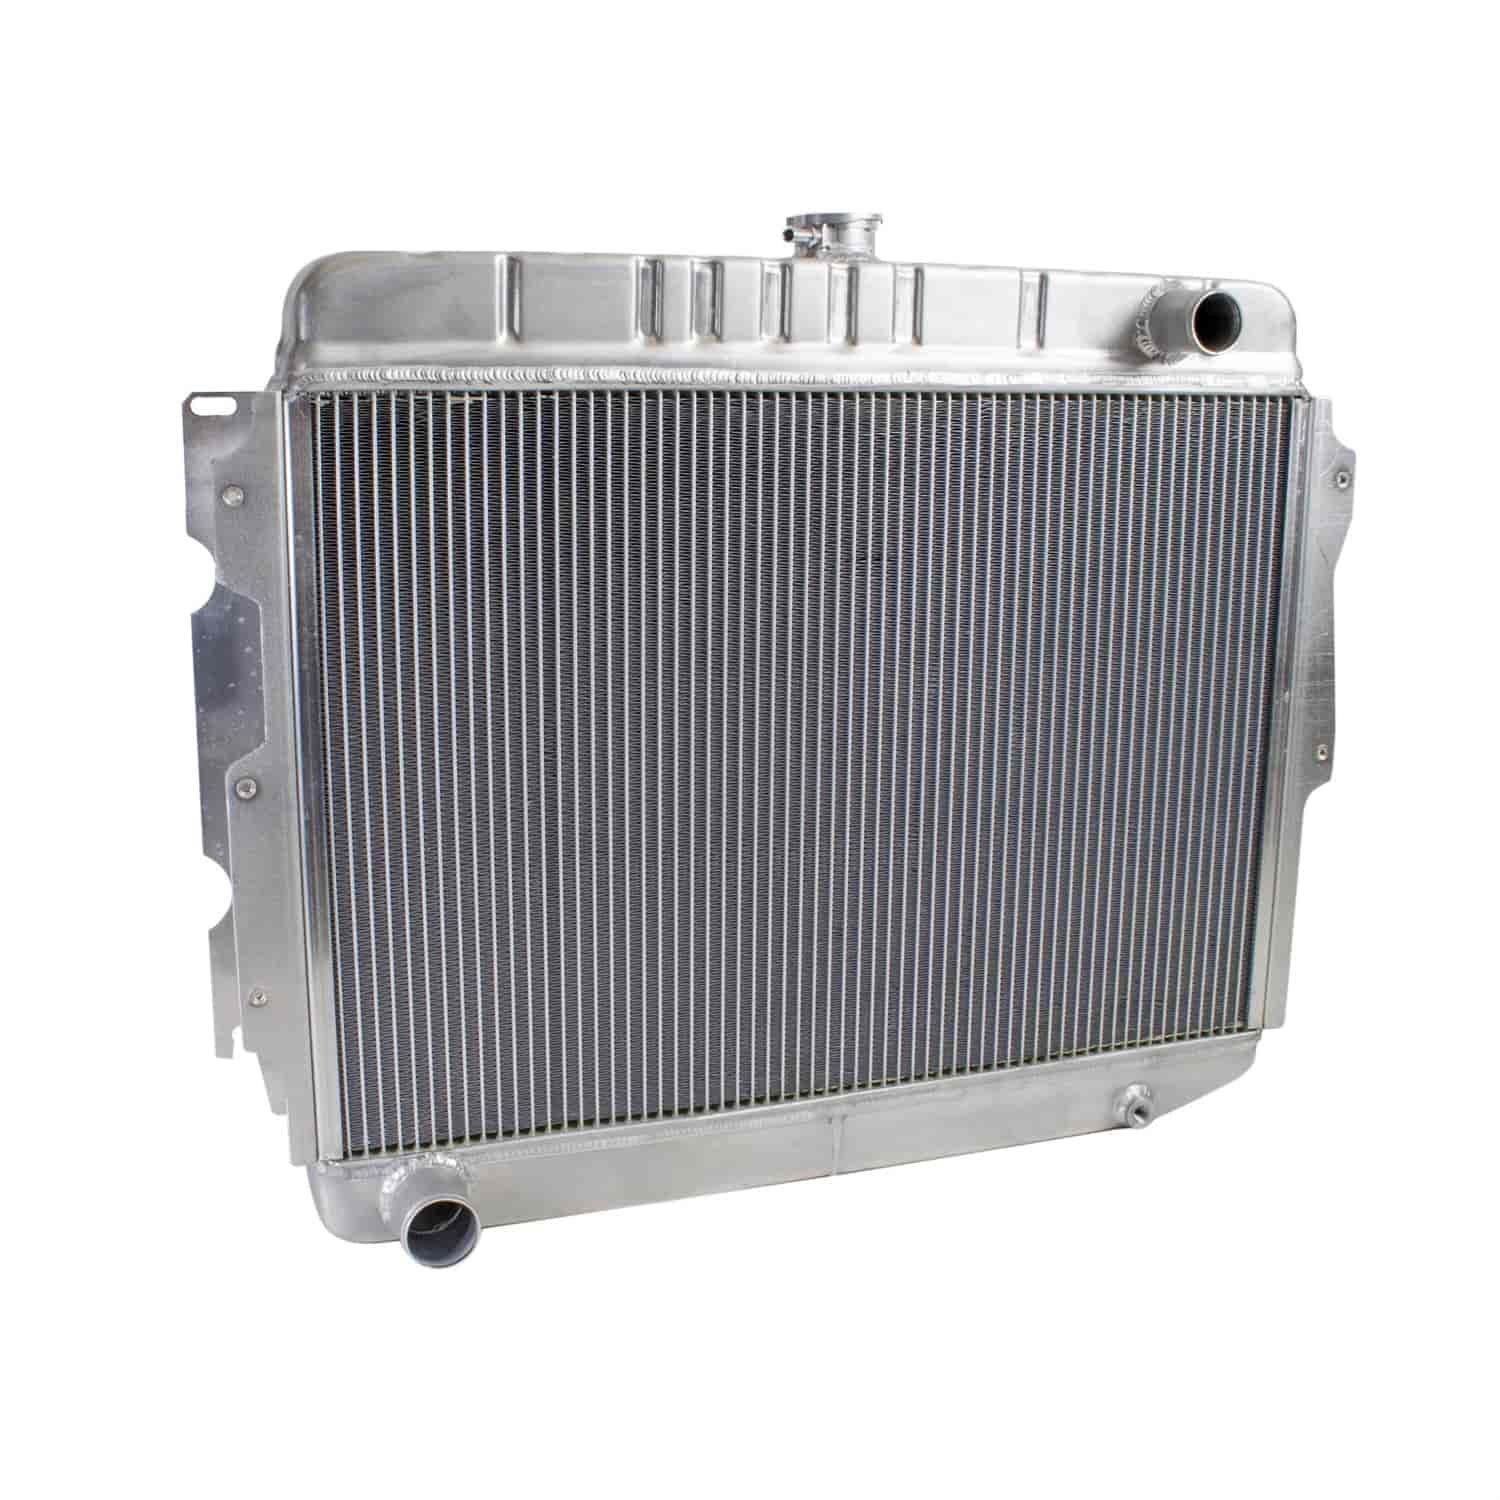 Griffin Radiators ExactFit Radiator for 1966-1969 Chrysler B Body  Belvedere/Satellite/Coronet/Charger with Big Block